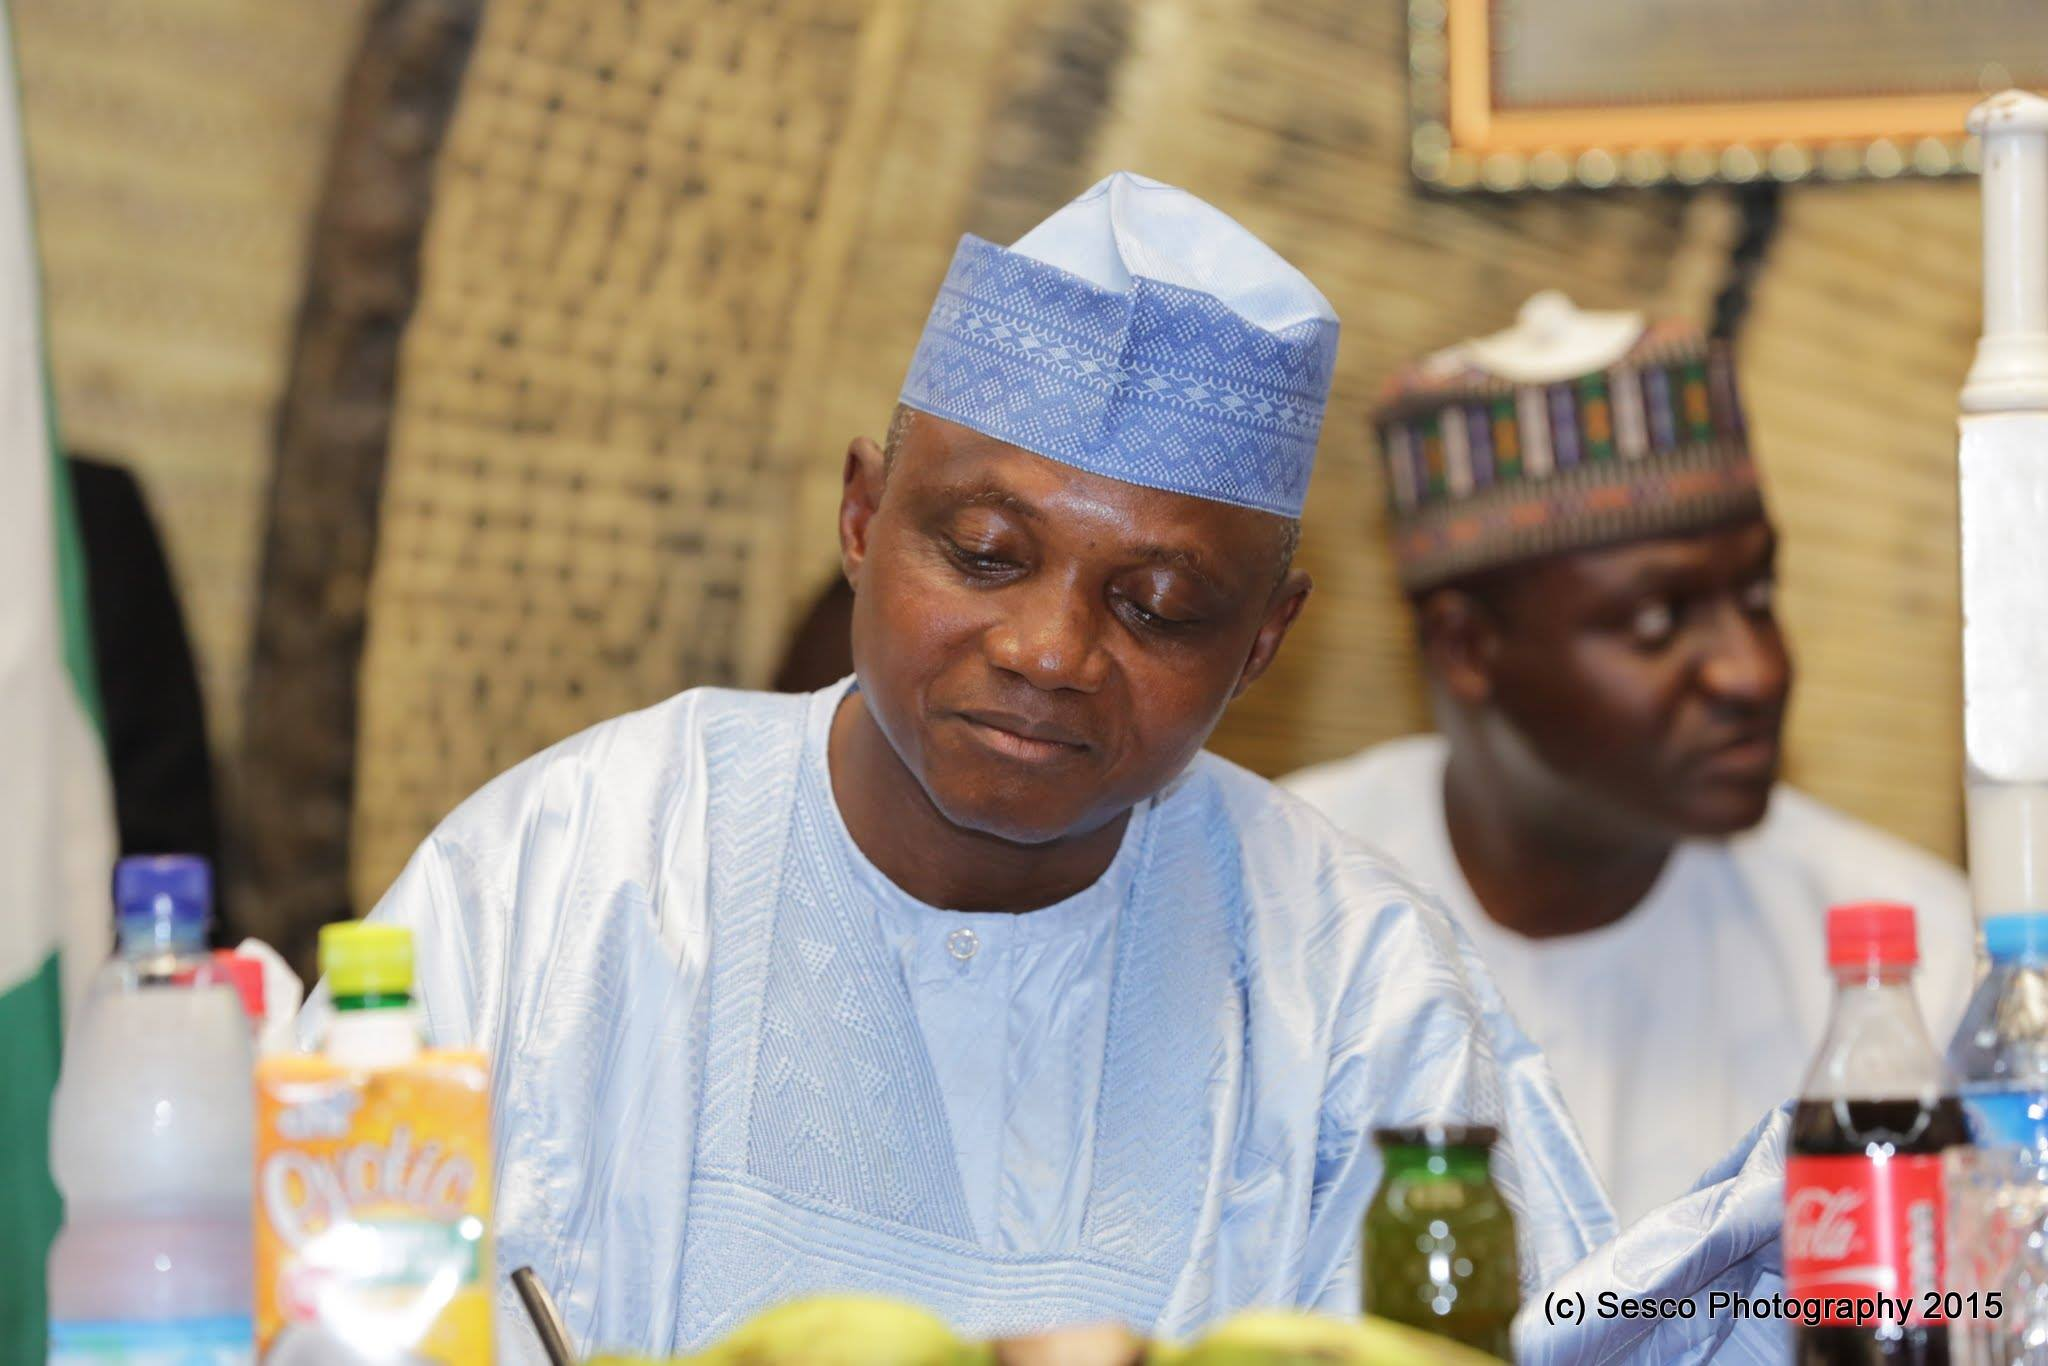 June 12 Tsunami and the ones who won't forgive Buhari, By Garba Shehu